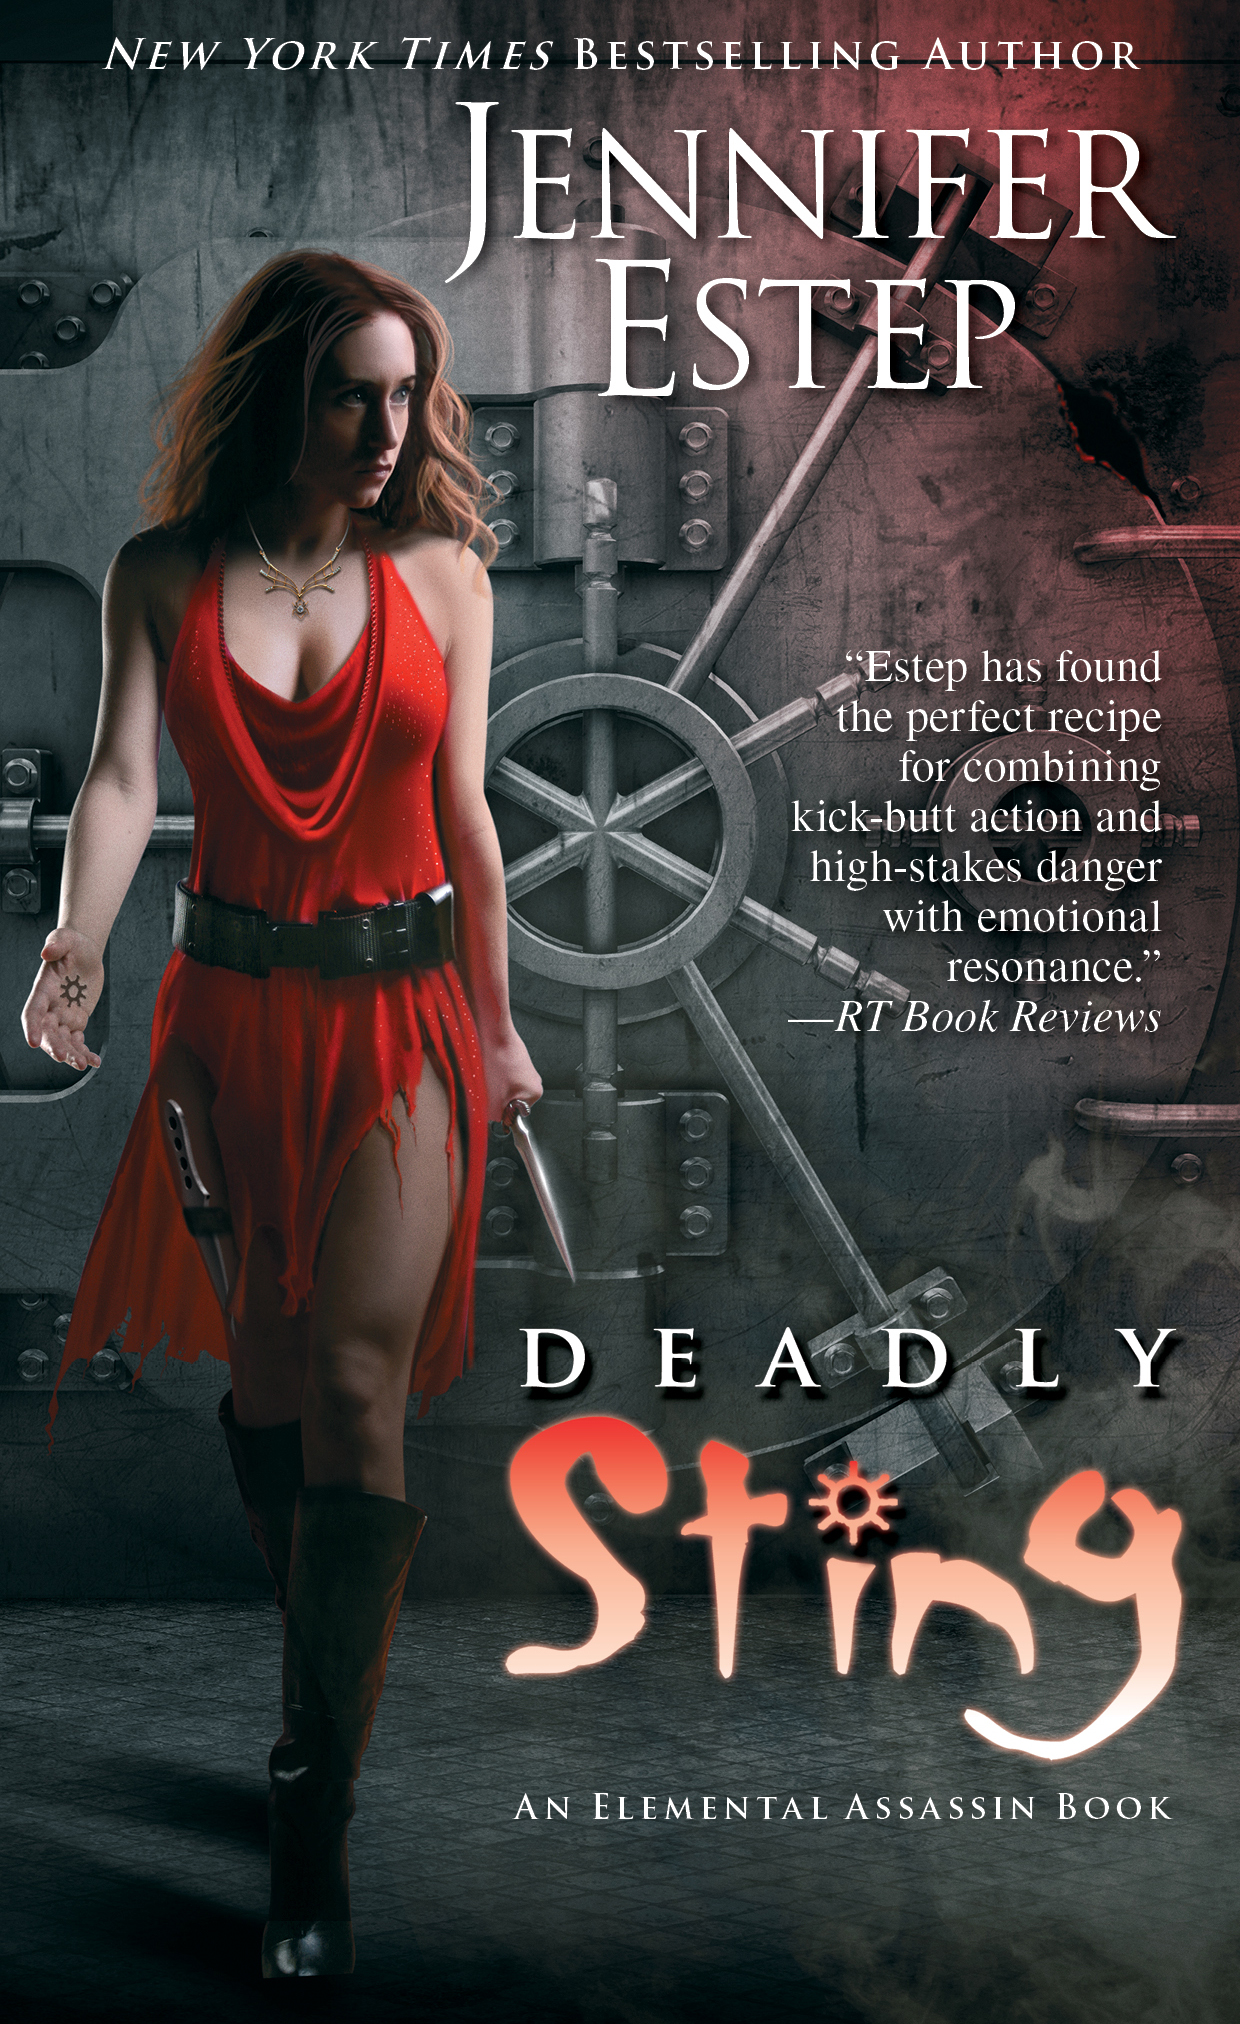 Book Cover Image (jpg): Deadly Sting